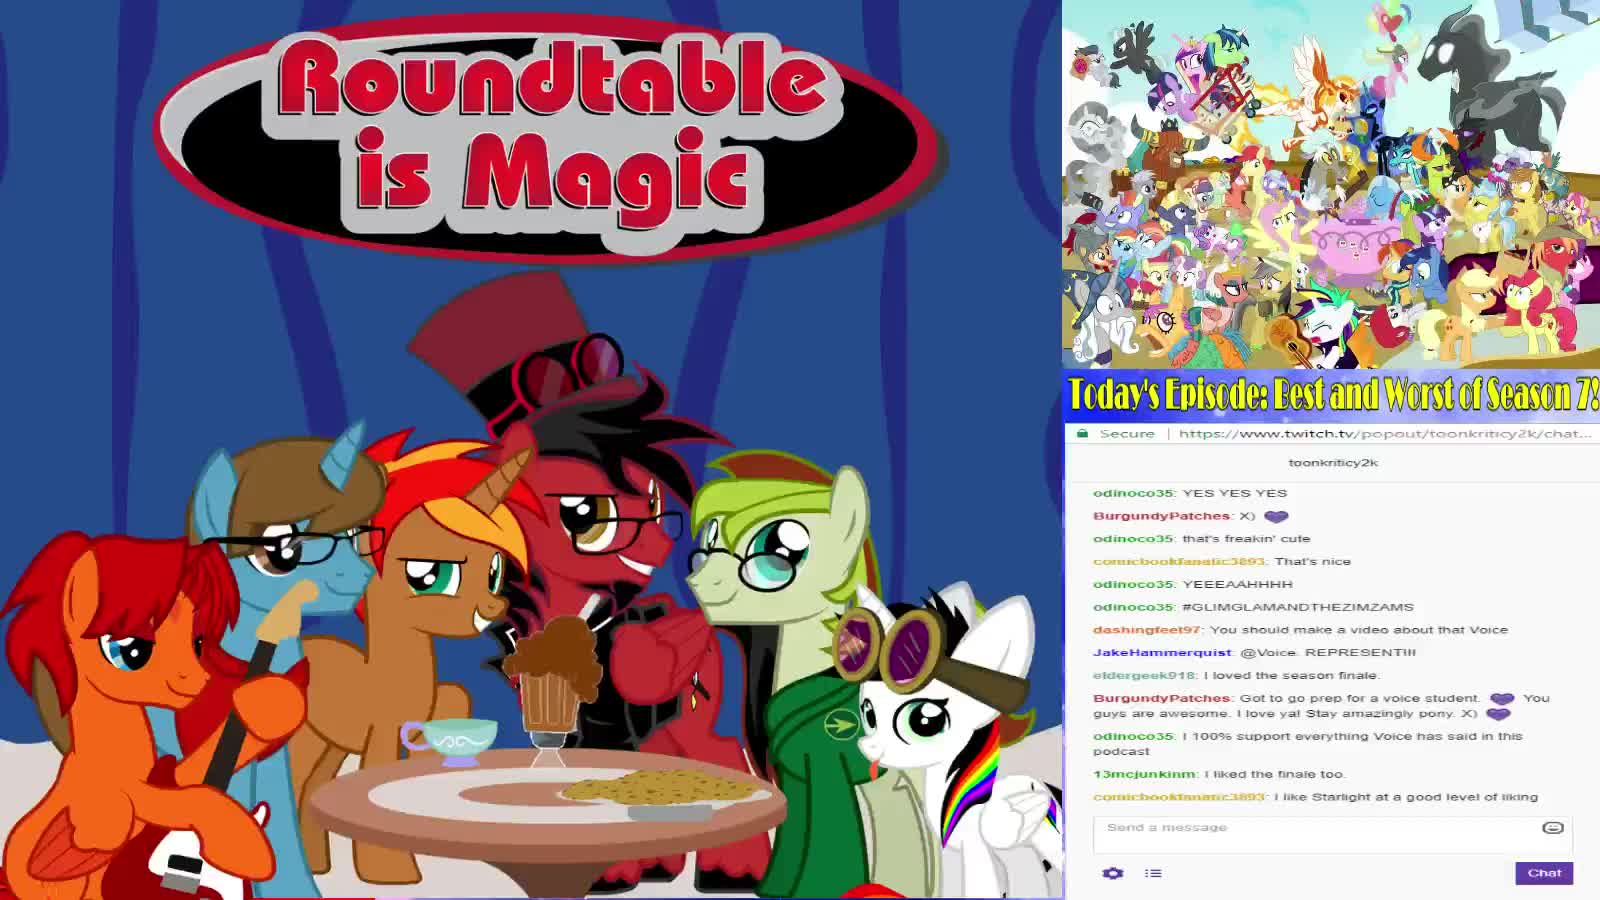 Roundtable is Magic 82: Best and Worst of Season 7 - Twitch